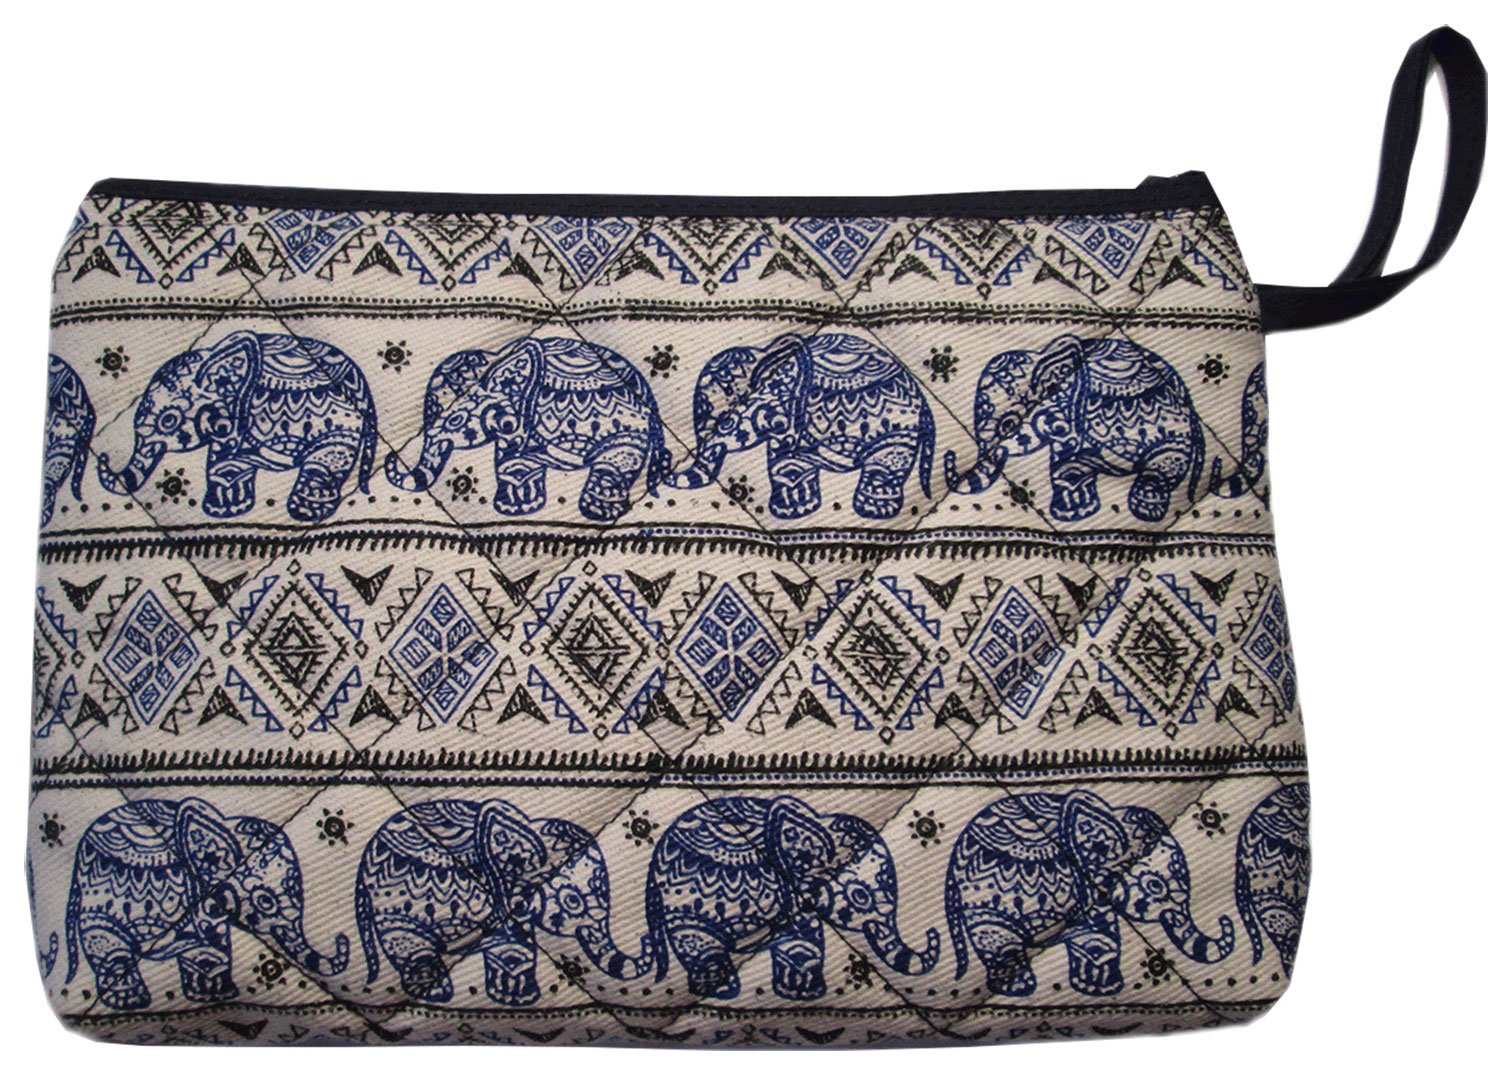 Makeup Cosmetic Bag Small Travel Purse Pencil Pen Case Pouch Elephant Canvas Unique Handmade Blue